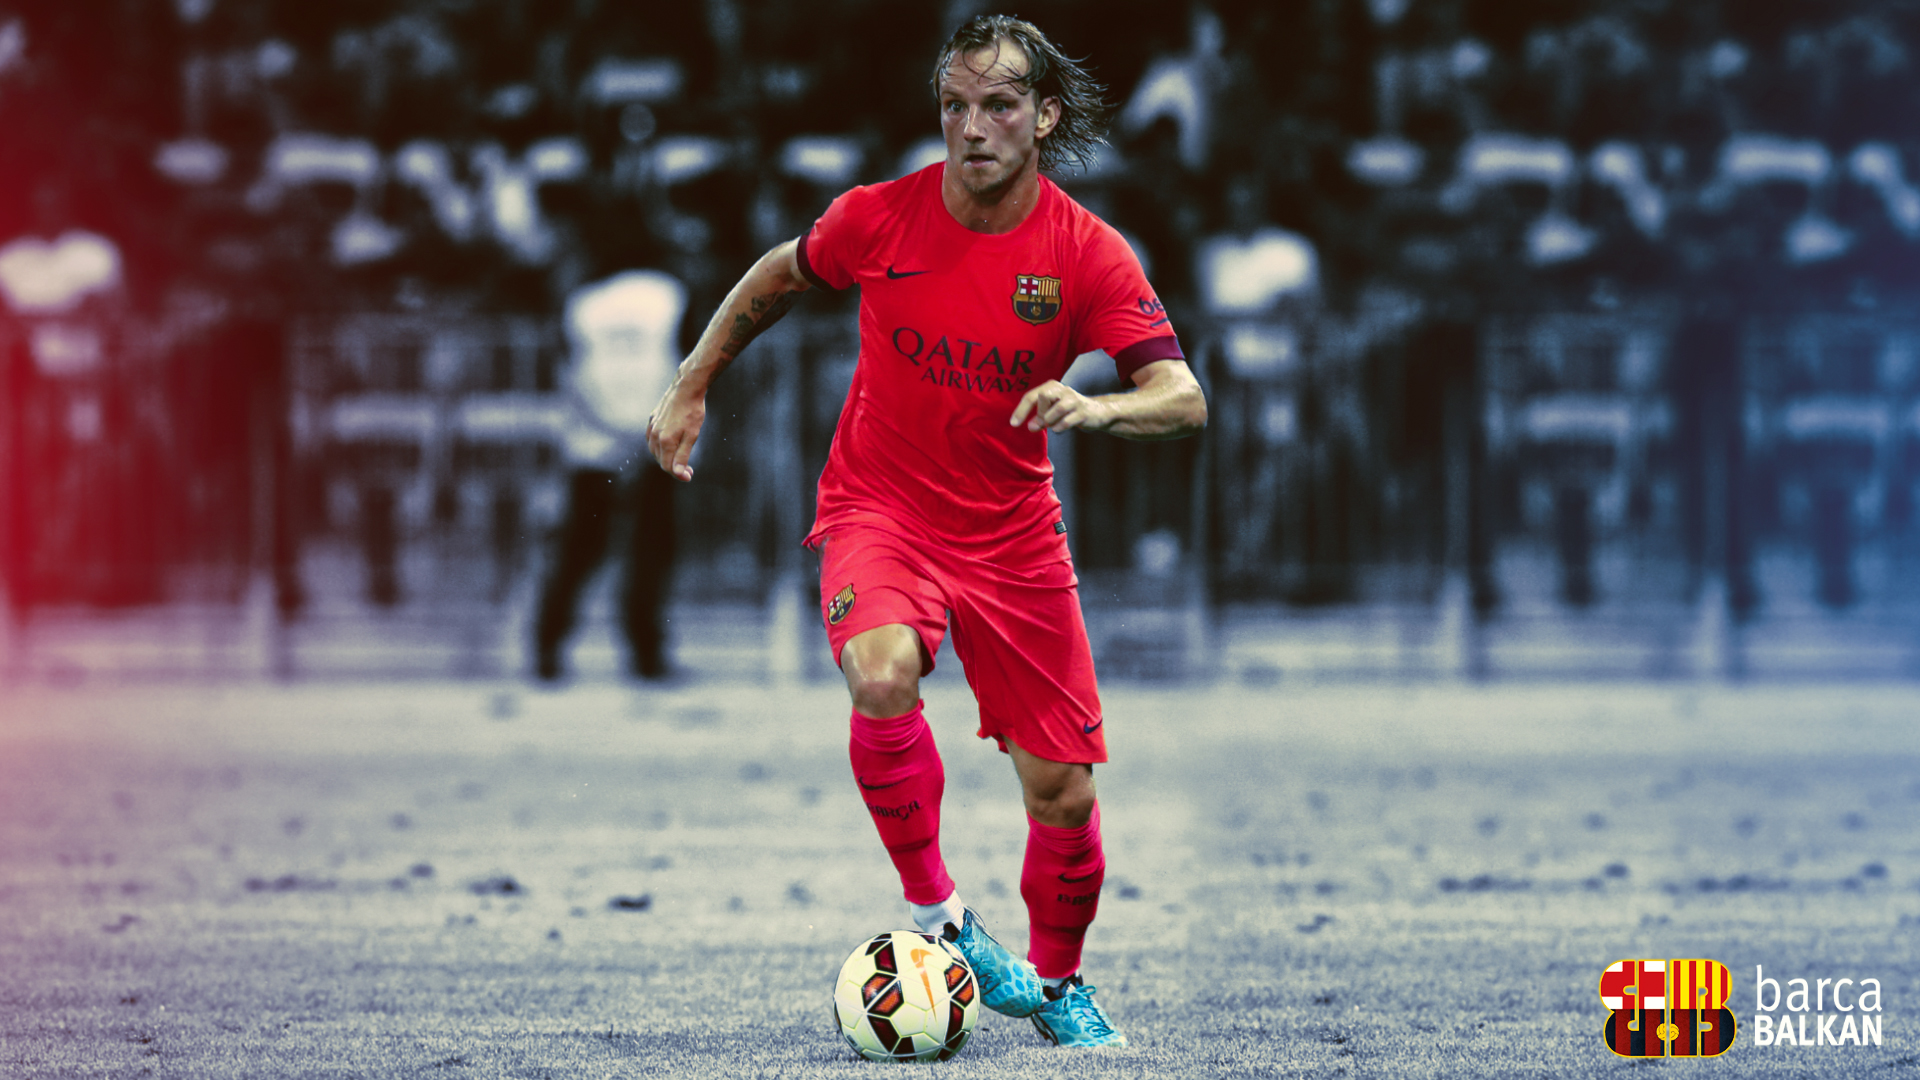 Ivan Rakitic FC Barcelona wallpaper 2014 15 by SelvedinFCB on